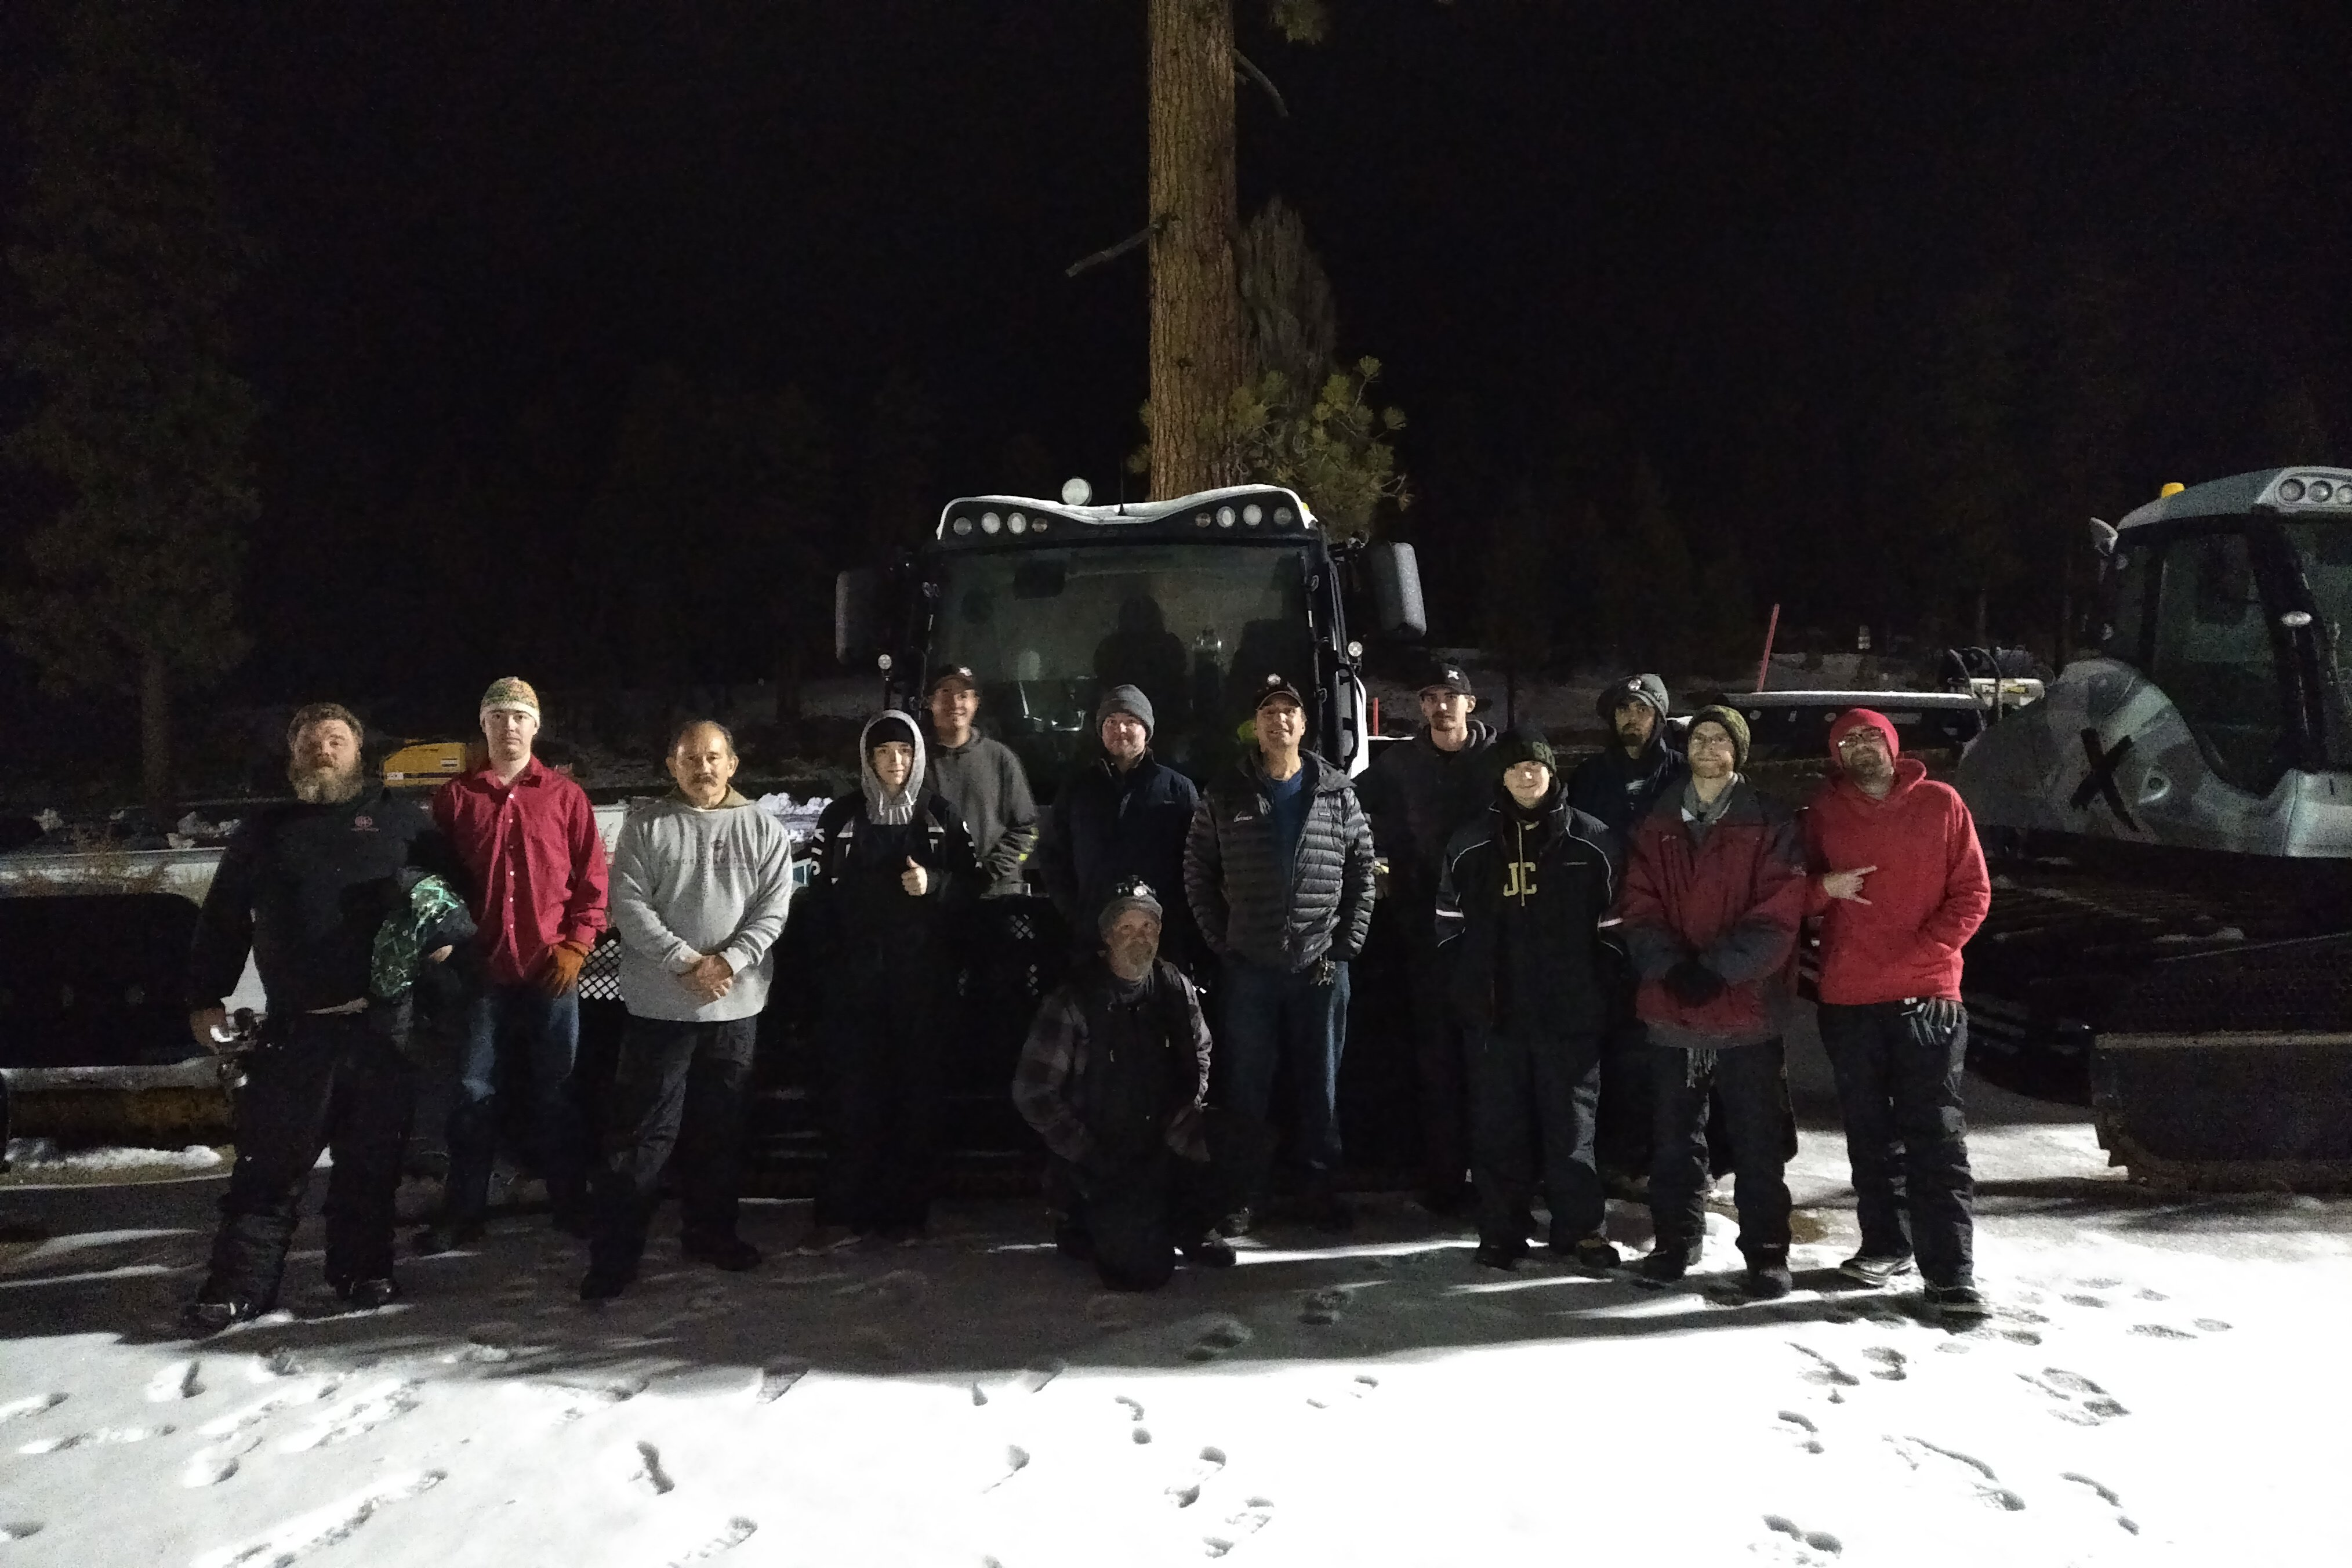 Snow Valley night crew poses for appreciation photo